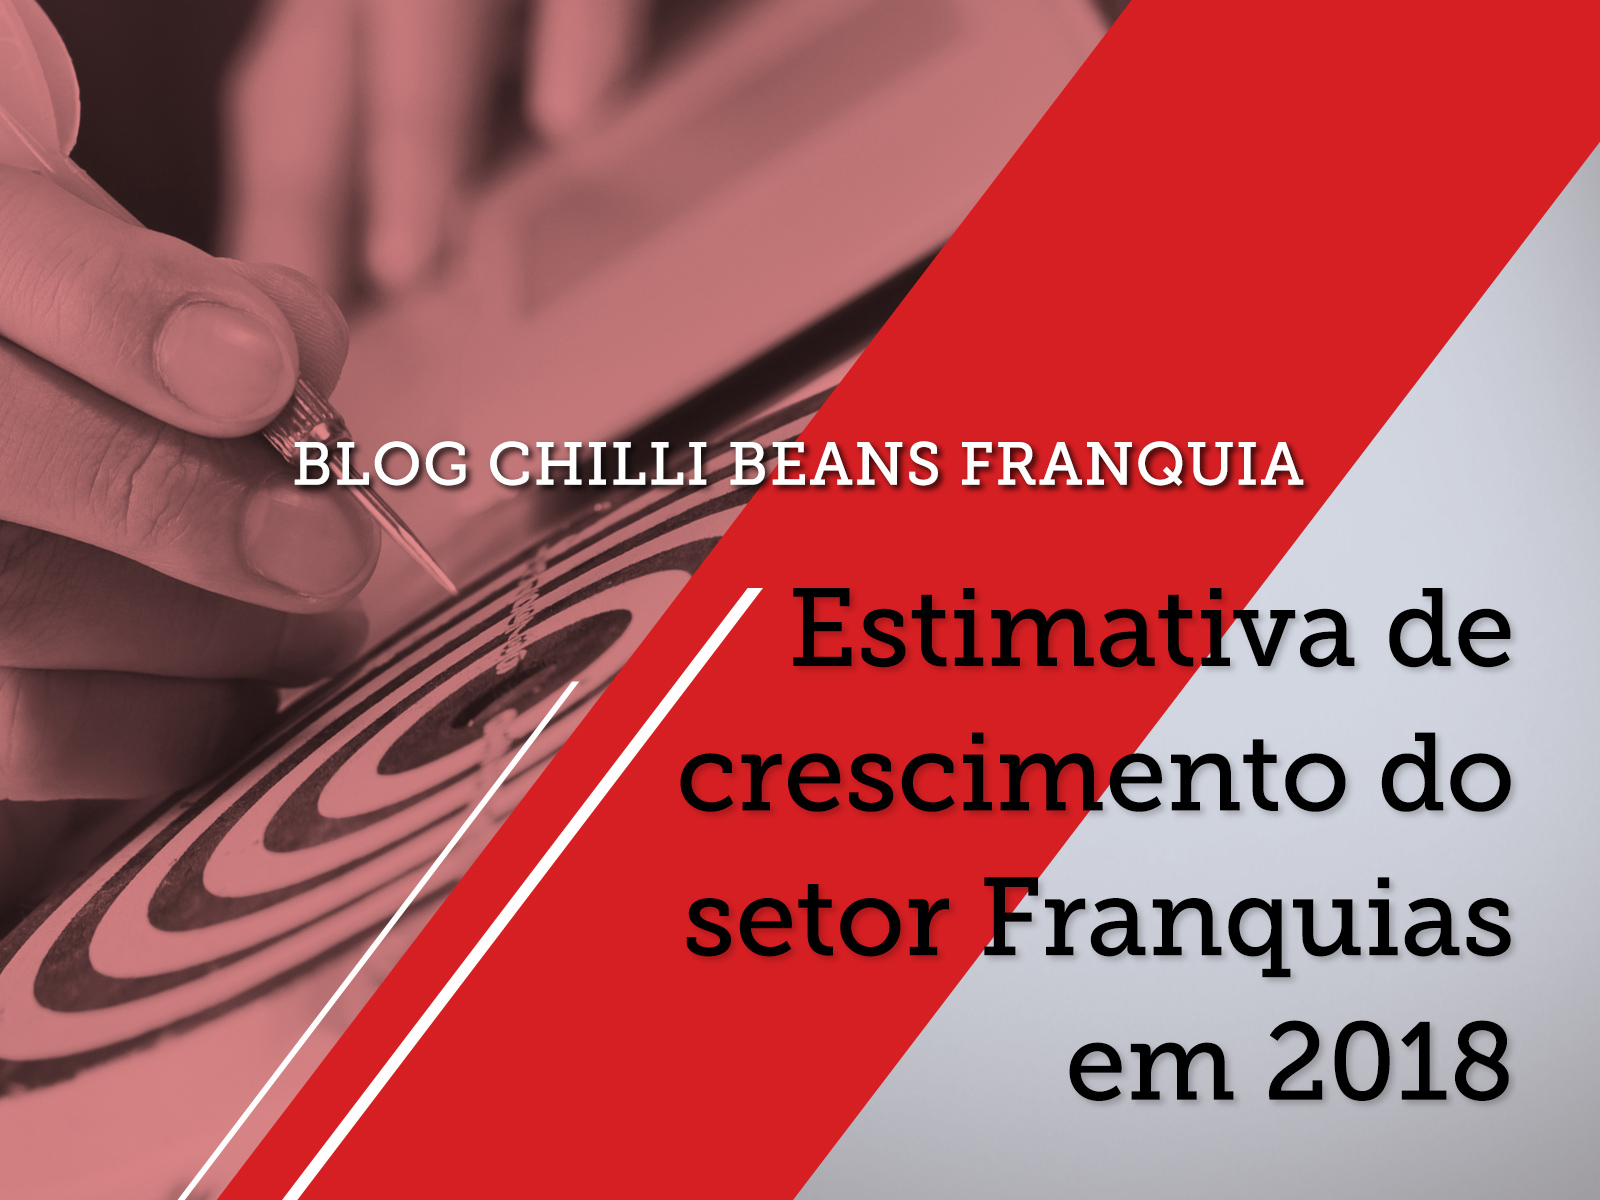 Blog Chilli Beans Franquia